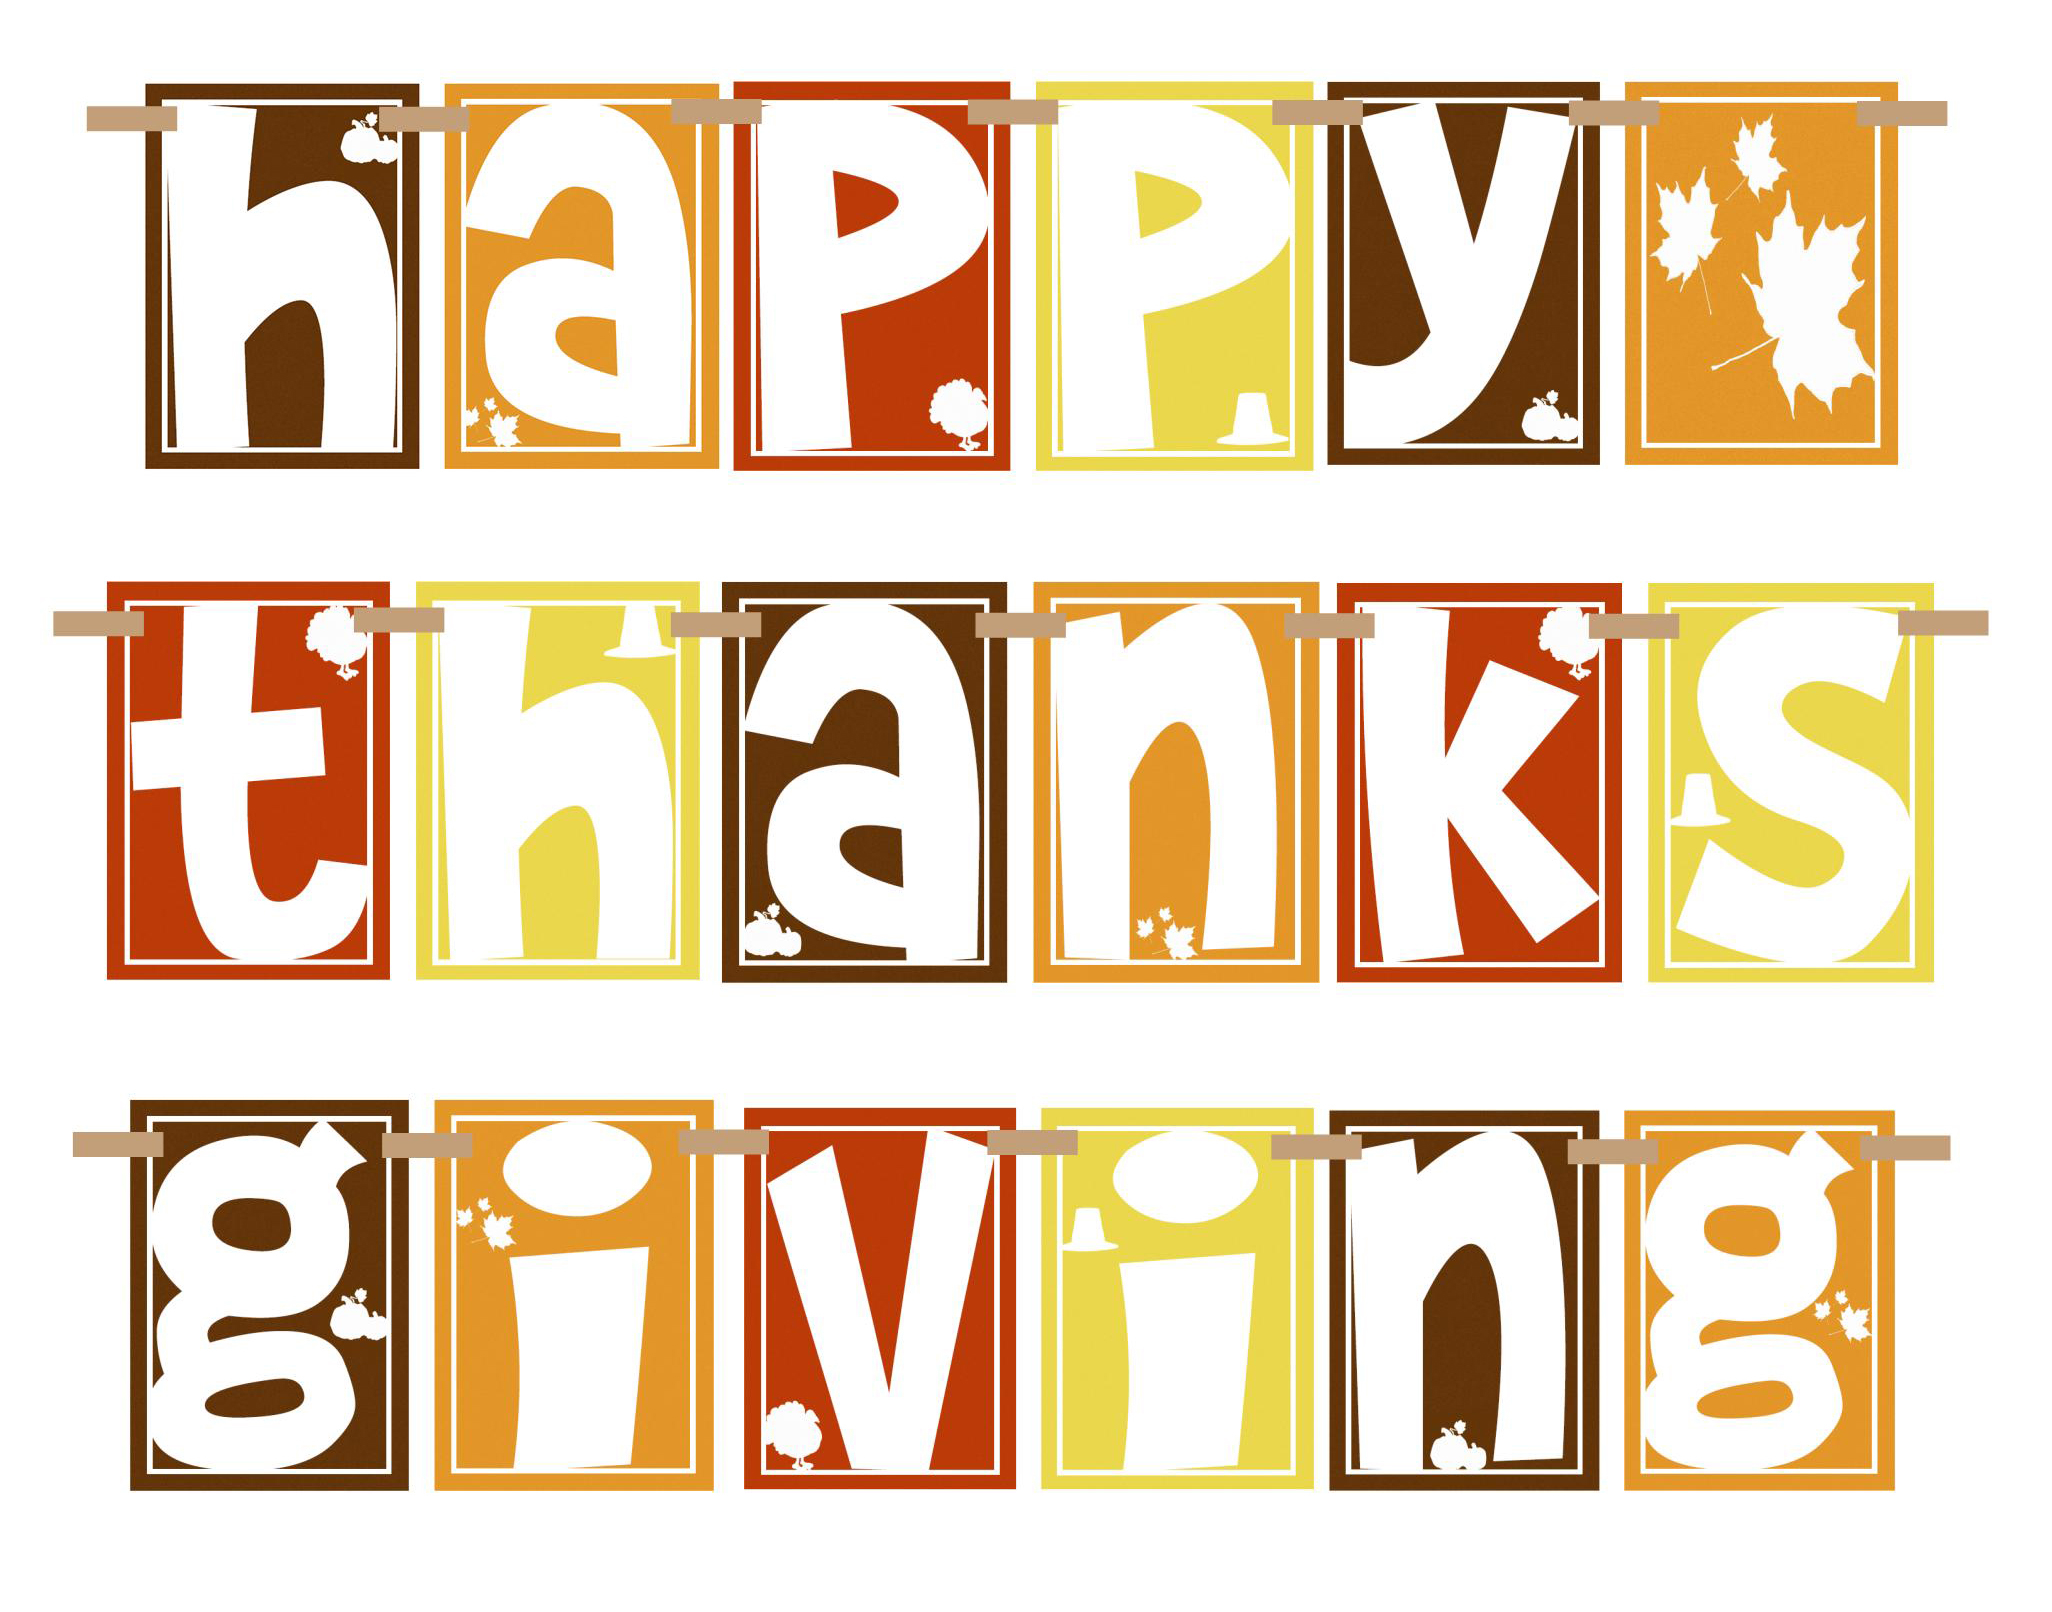 2016 clipart thanksgiving. Happy pictures photos and